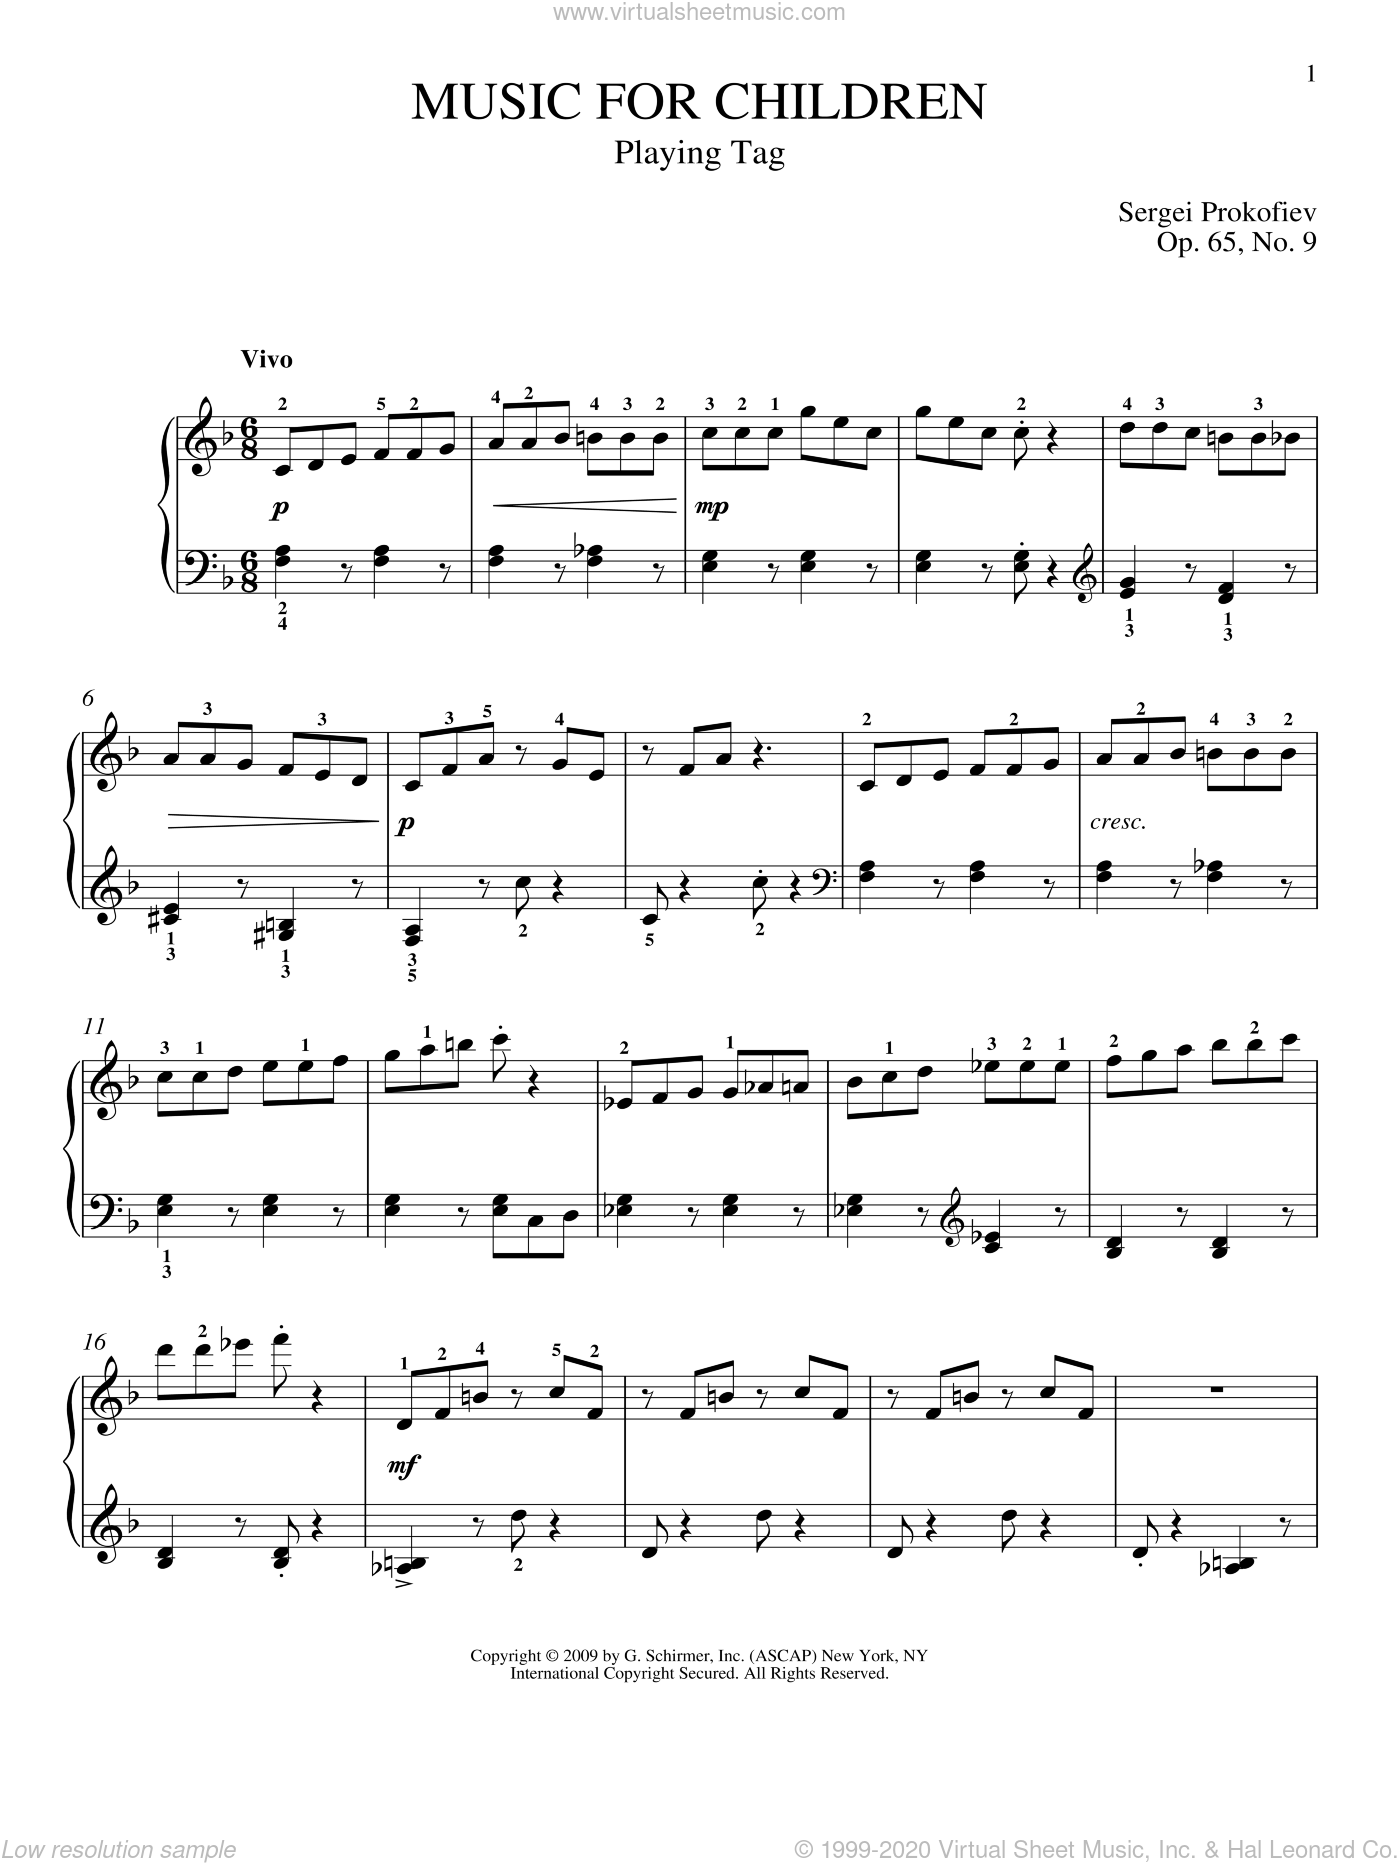 Playing Tag sheet music for piano solo by Sergei Prokofiev